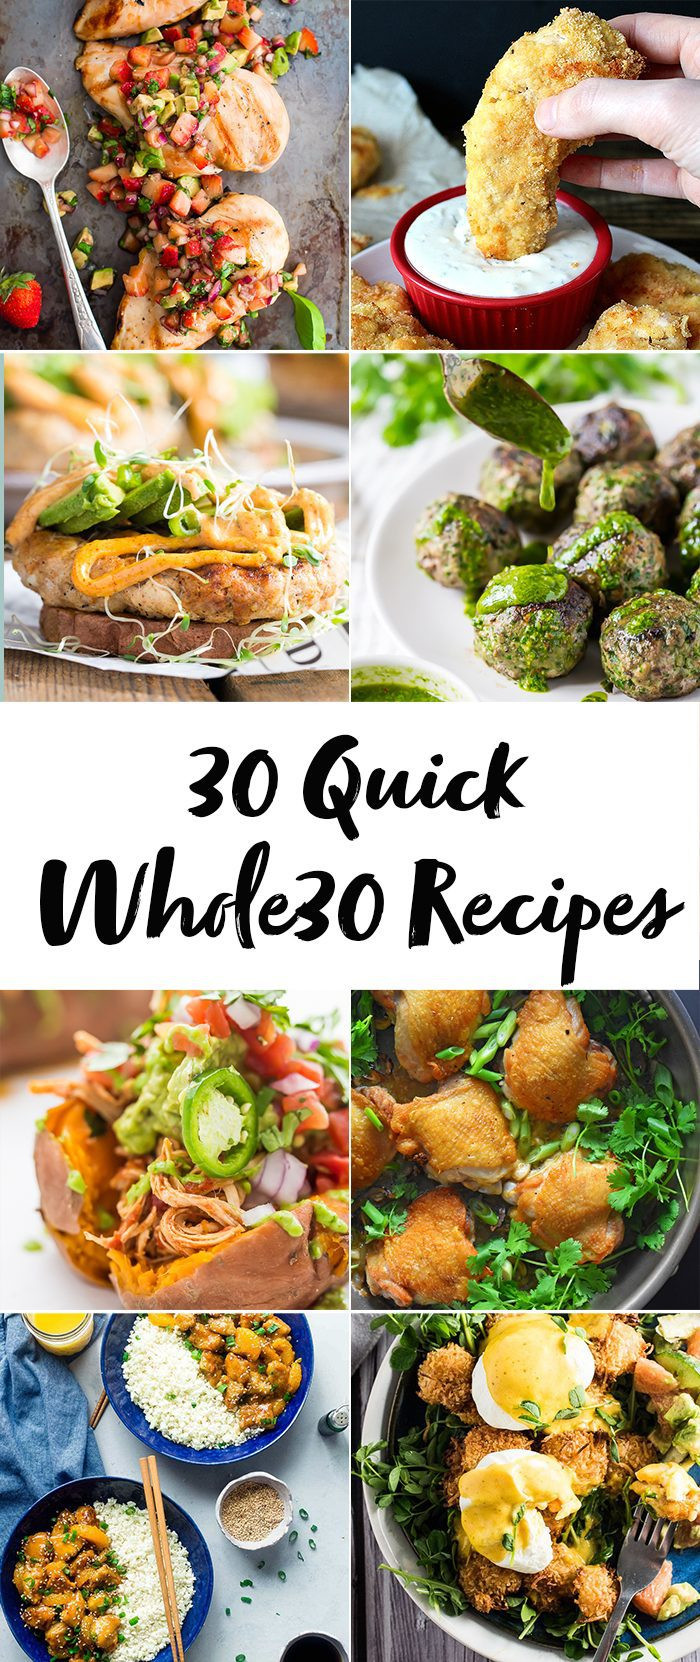 Whole30 Dinner Recipes  30 Quick Whole30 Recipes Whole30 Dinner Recipes